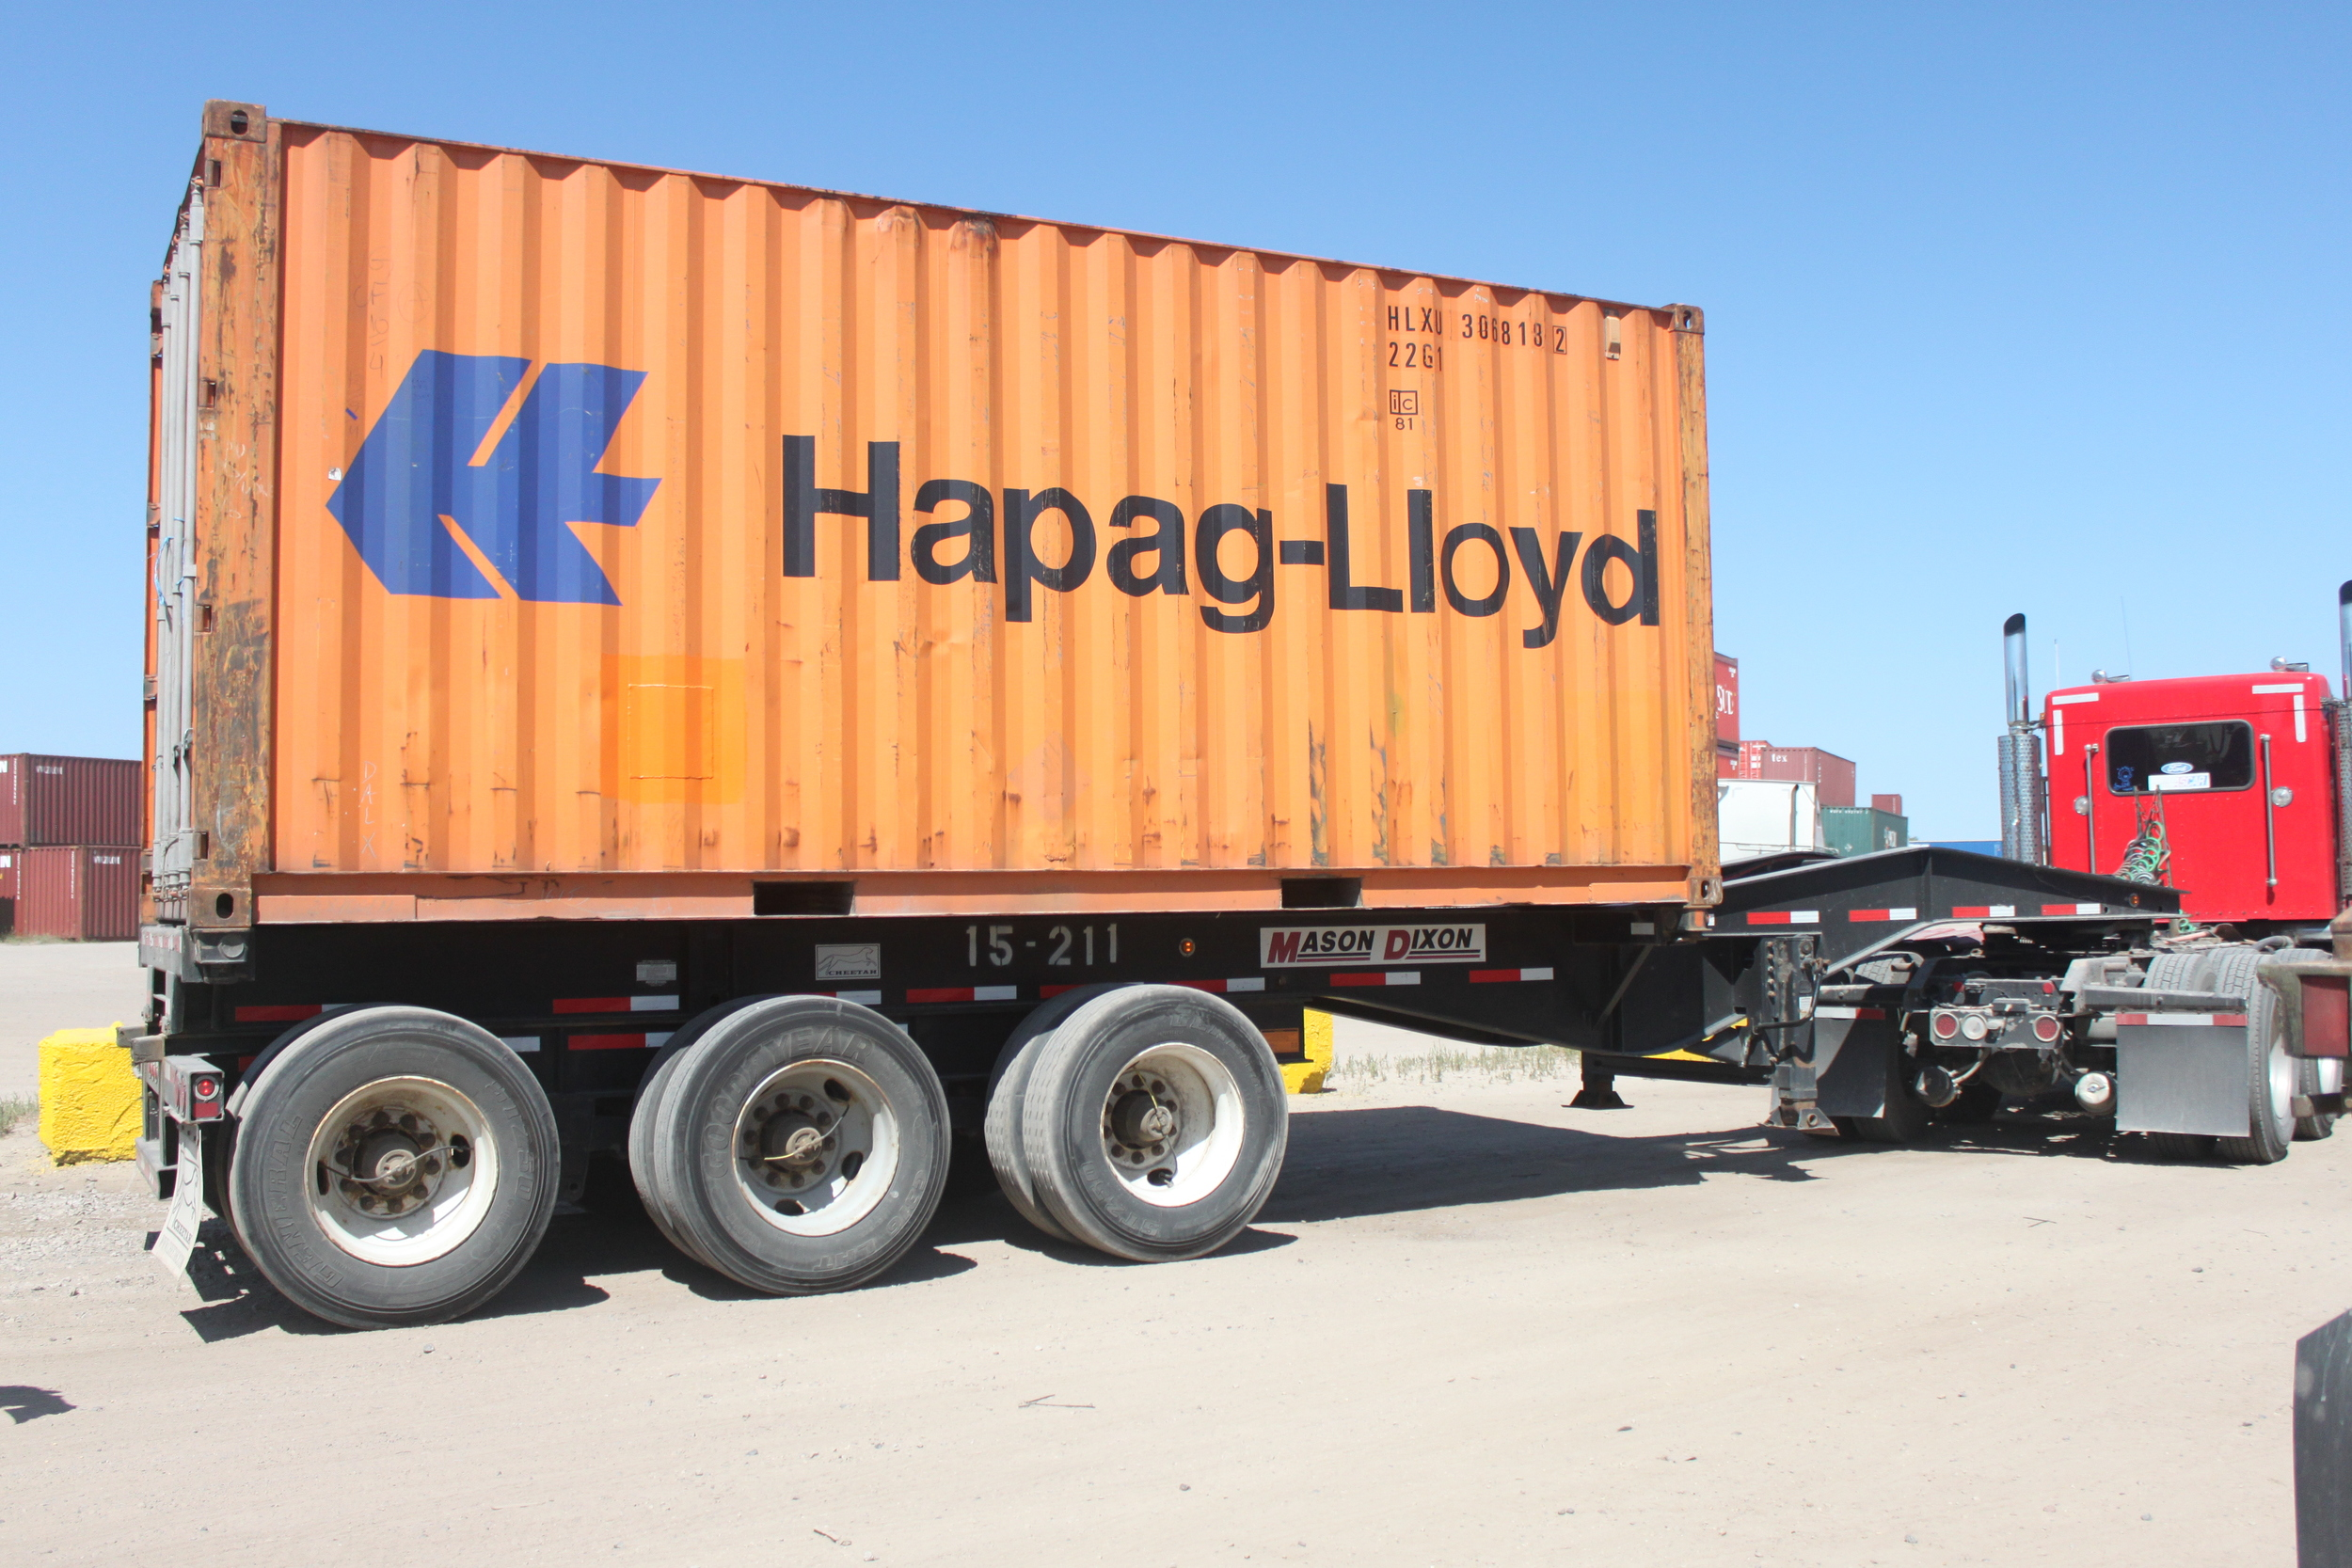 Chassis for bringing containers to and from the port or rail